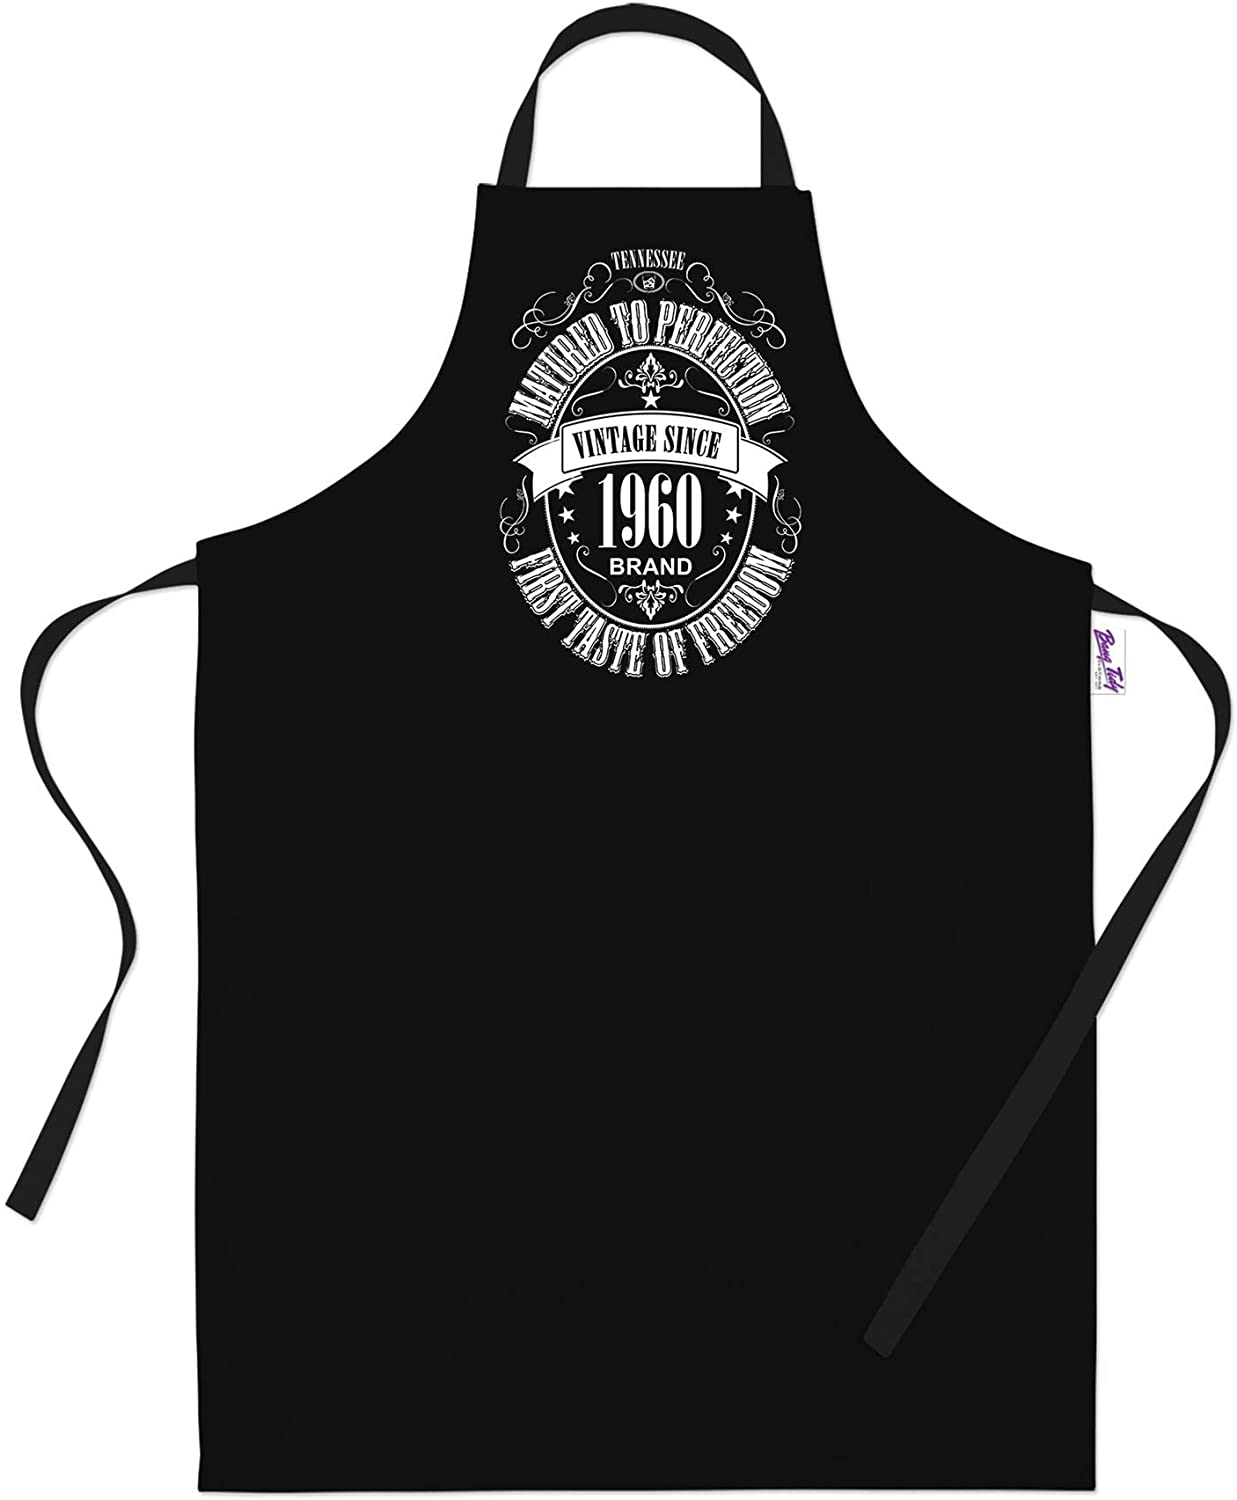 60th Birthday Gifts for Men Him Dad Husband BBQ Cooking Apron Matured 1960